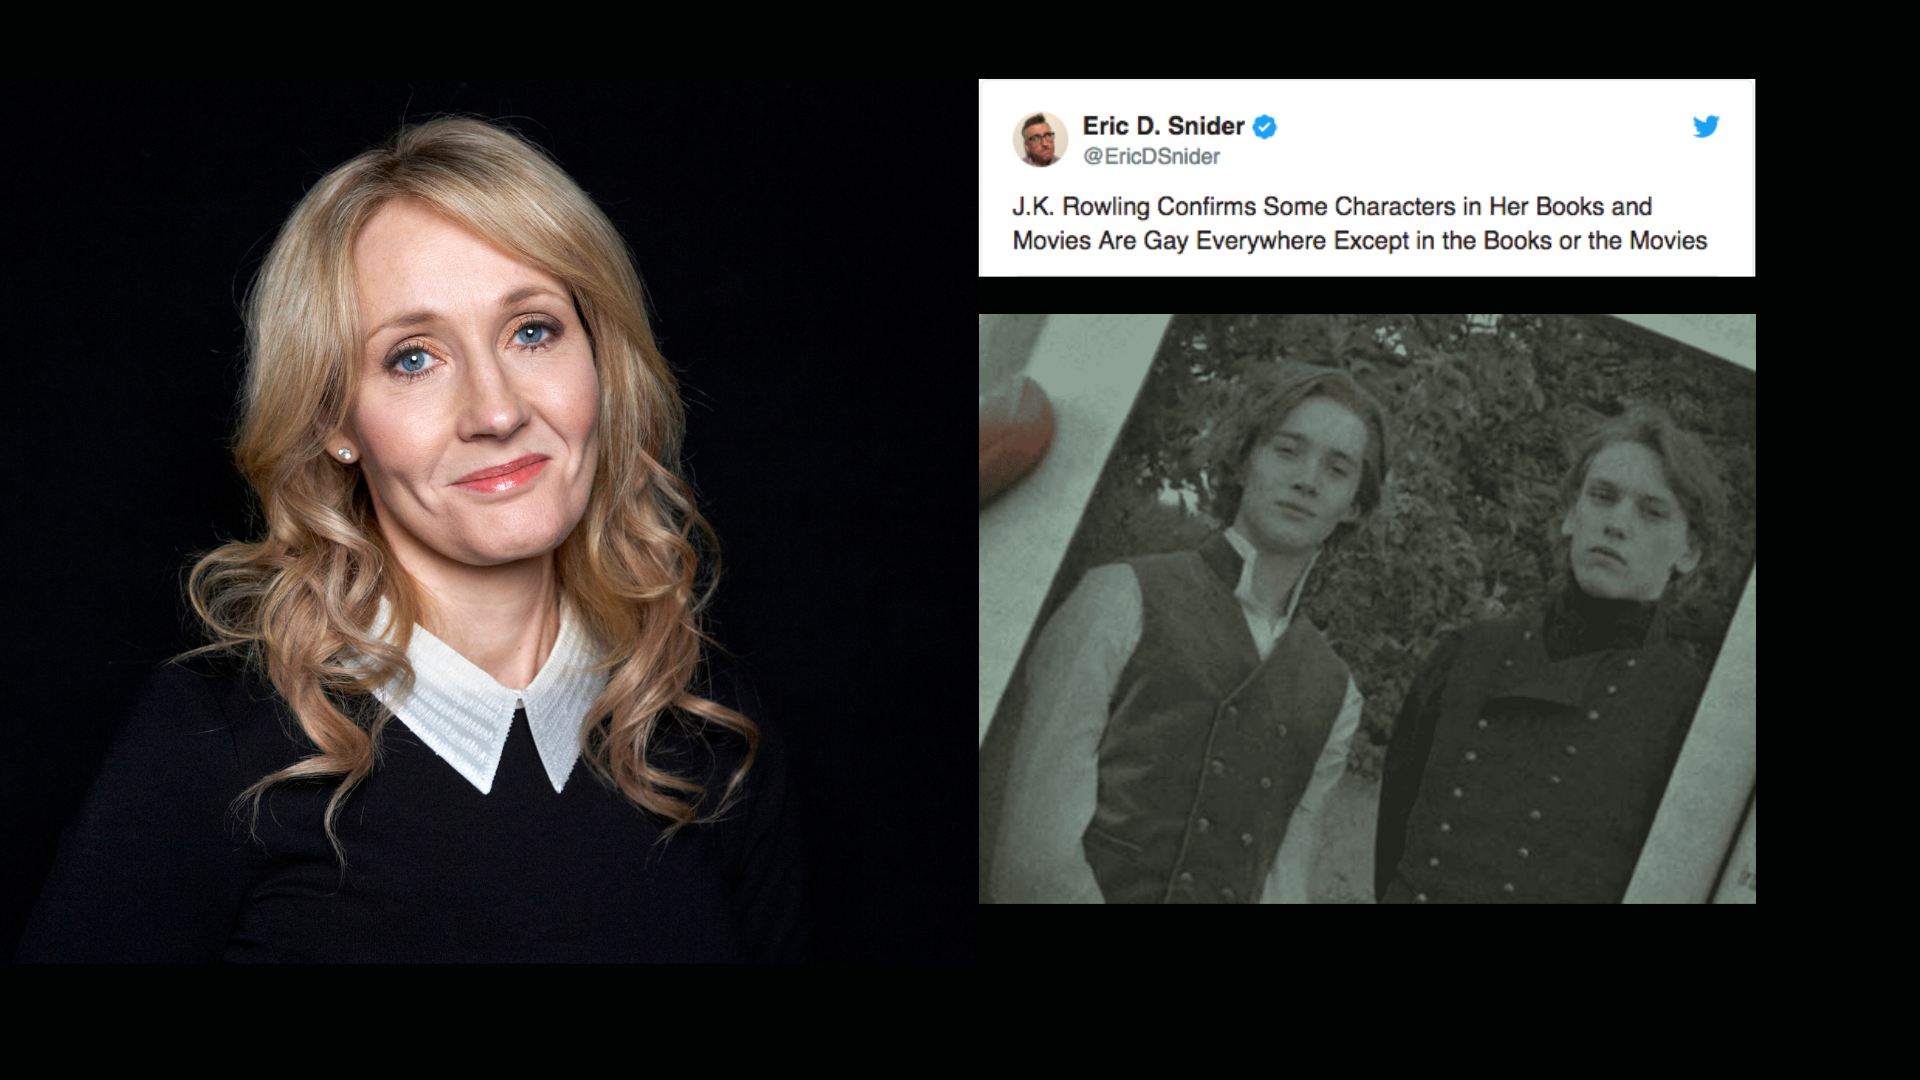 After Her Big Reveal, Twitter Slams Rowling for Lack of Diversity